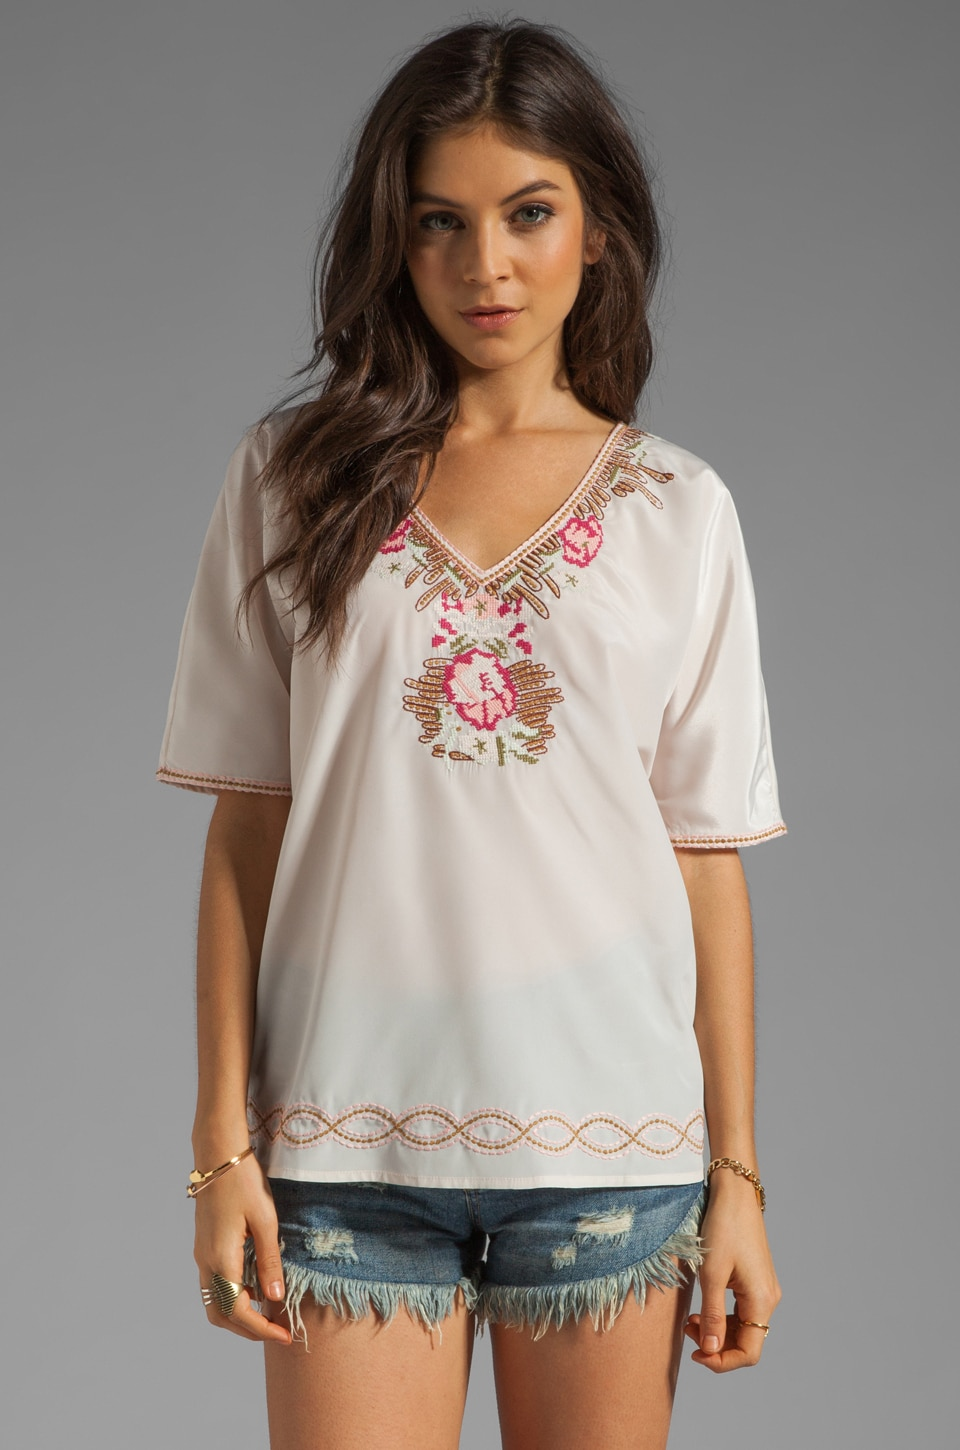 Beyond Vintage V-Neck Embroidered Top in Sabola